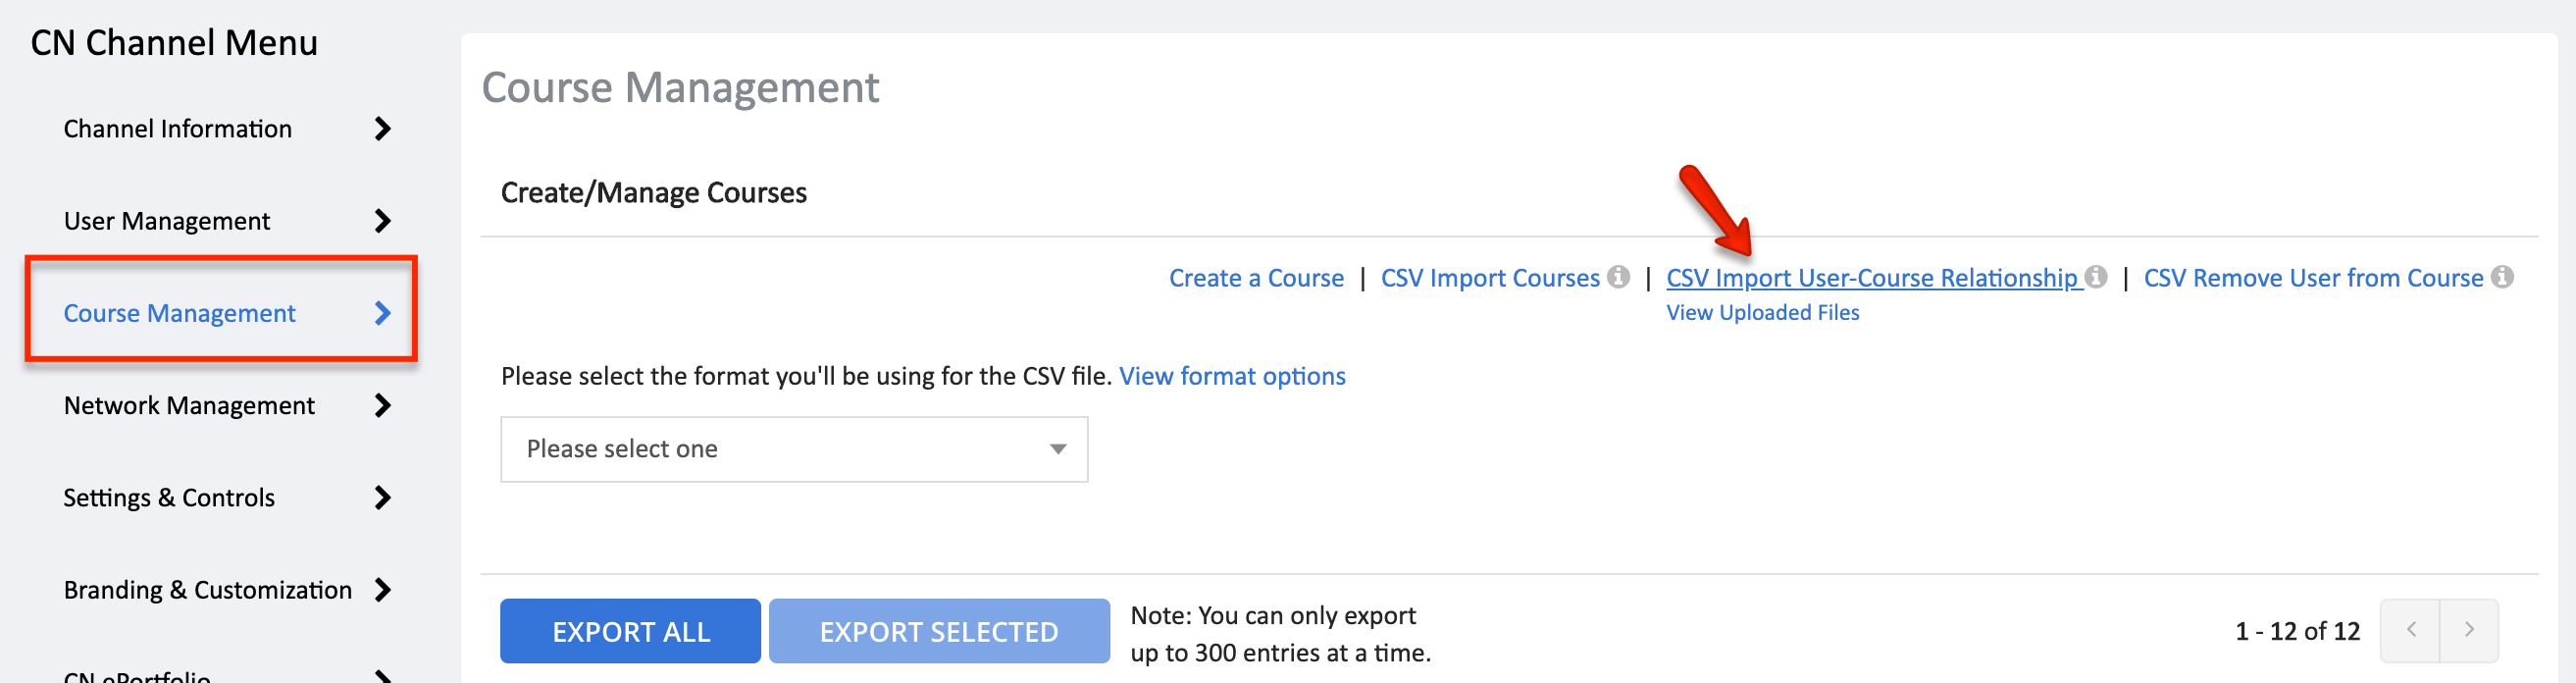 1csv_import_user_course_relationship_tab.png